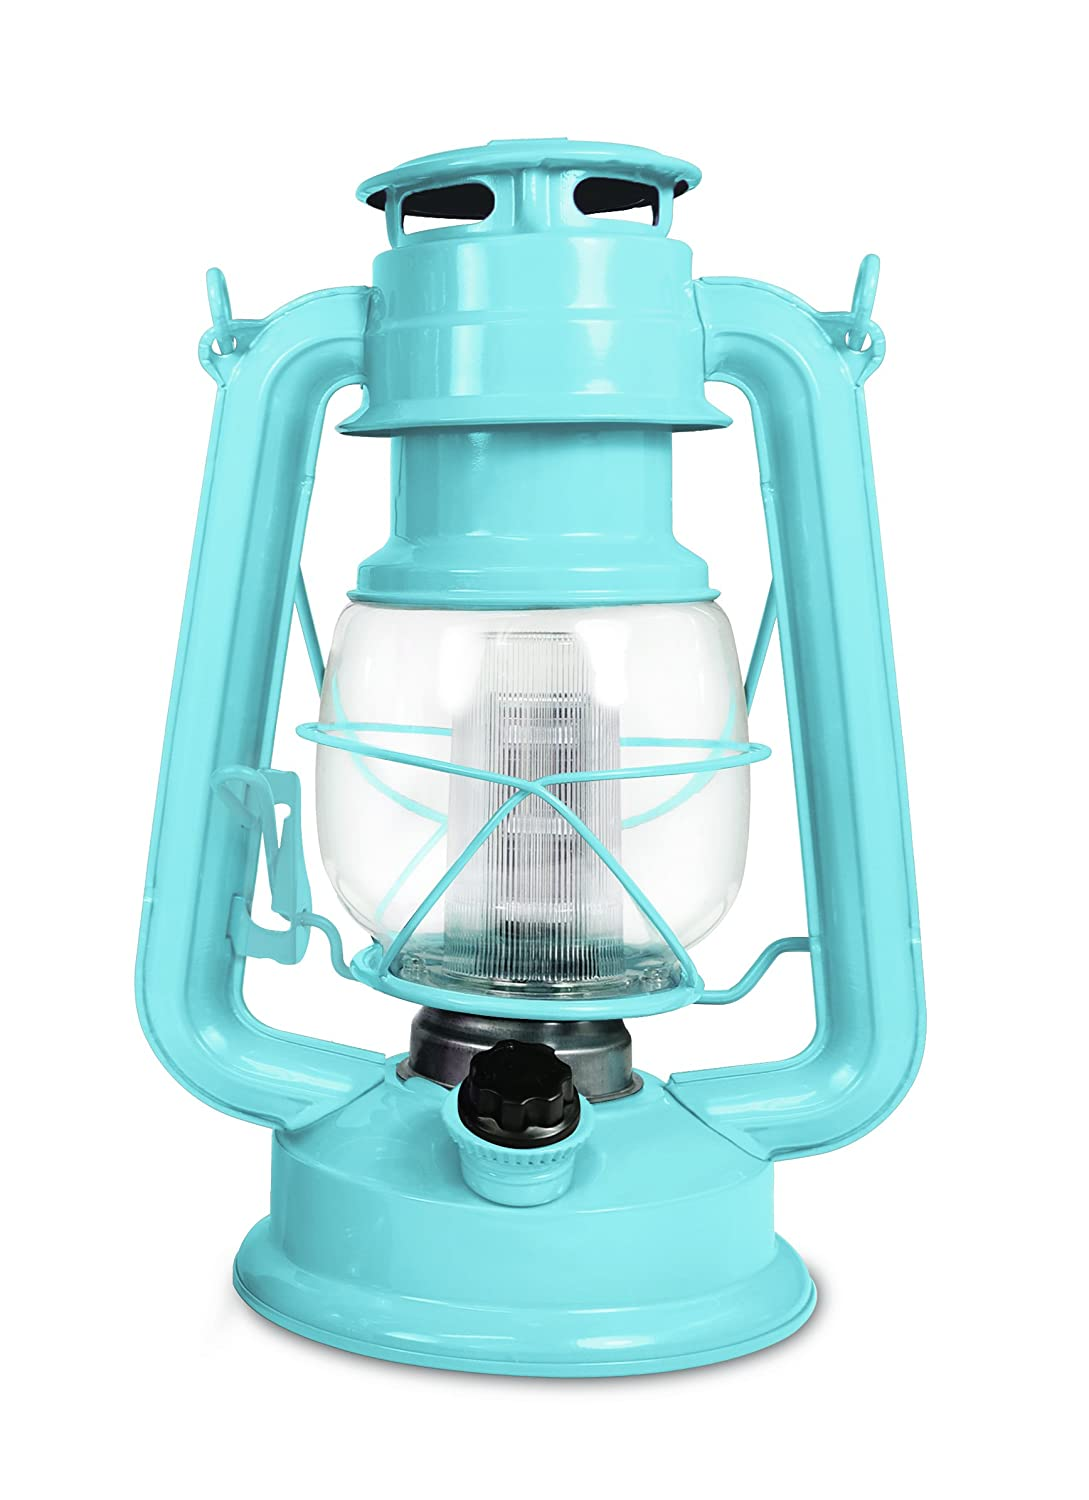 Northpoint 190614 Vintage Style Horizon Haze Hurricane 12 LED s and 150 Lumen Light Output and Dimmer Switch, Battery Operated Hanging Lantern for Indoors and Outdoor Usage, Piece